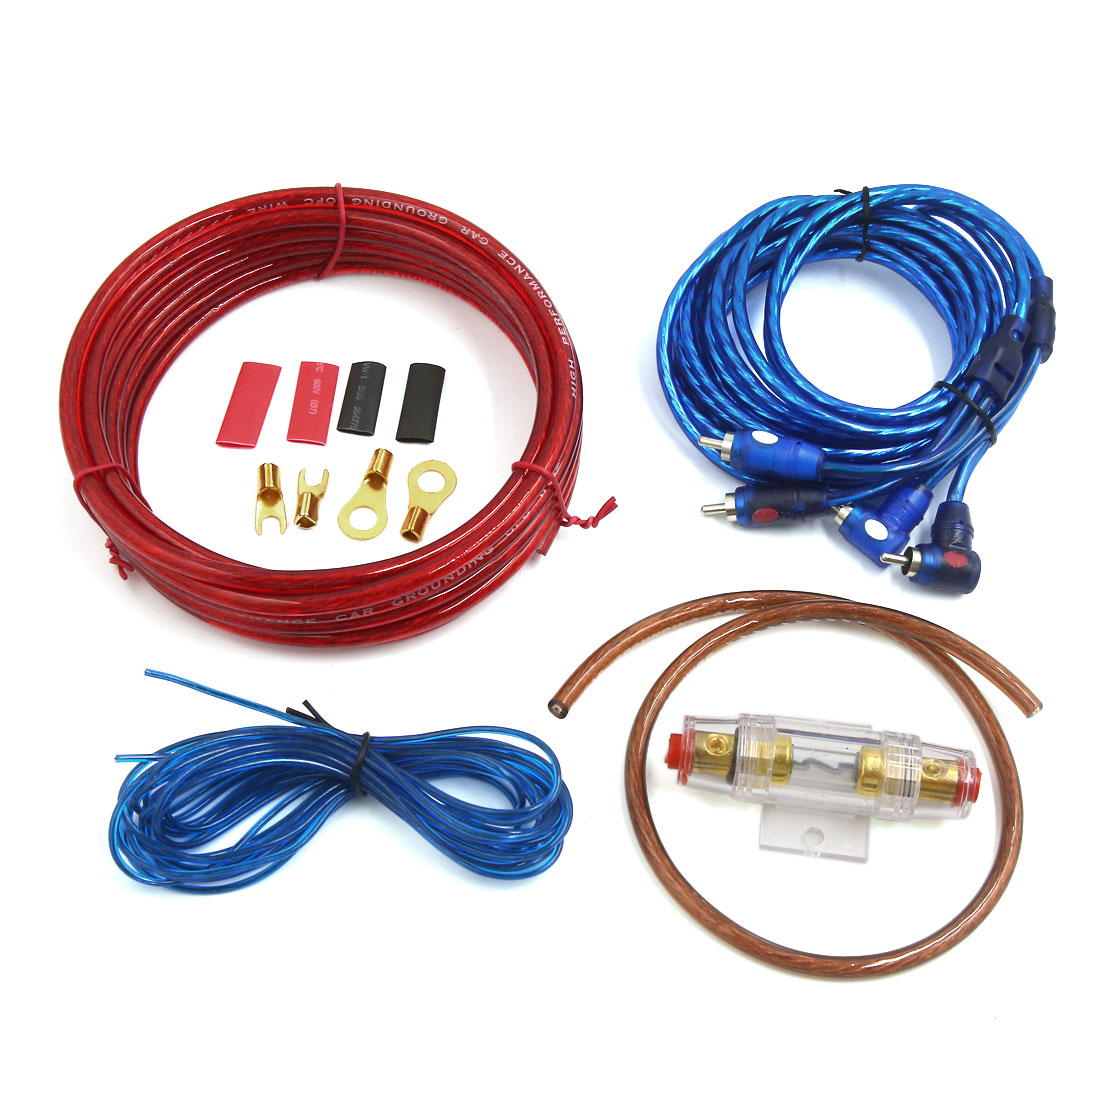 4.3M Audio Power Cable Amplifier Wiring Kits for Universal Car